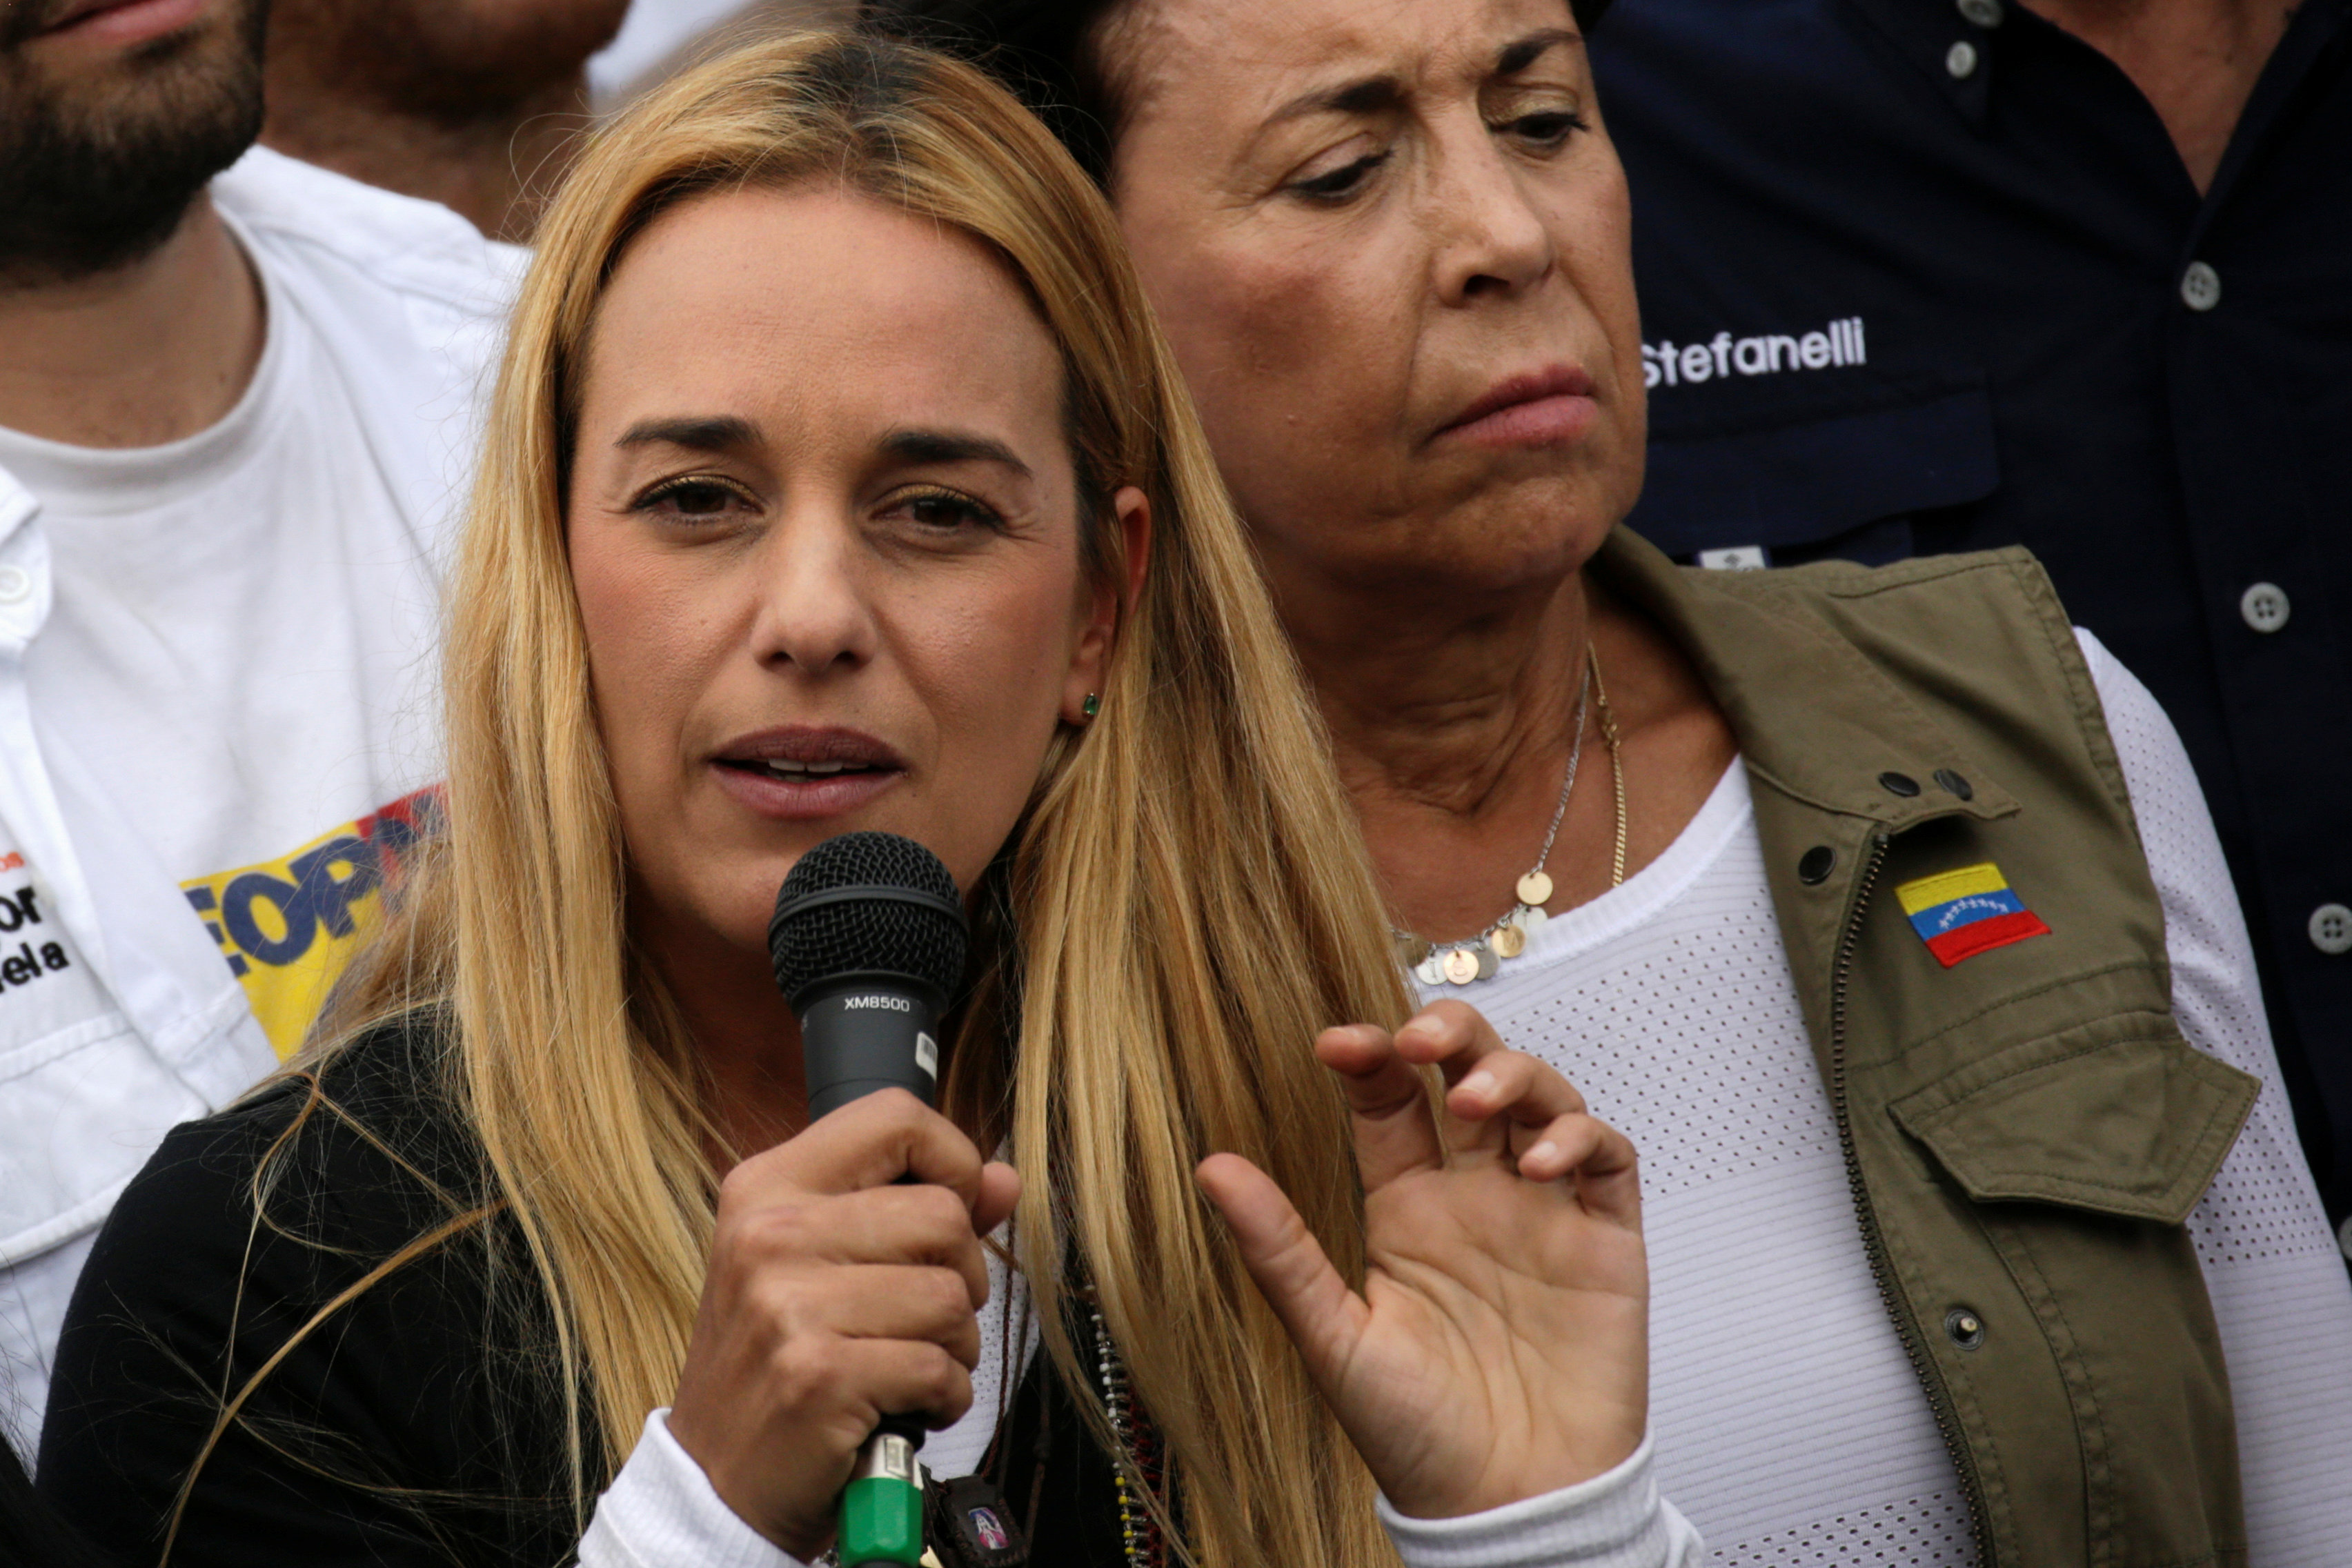 Lilian Tintori, wife of jailed Venezuelan opposition leader Leopoldo Lopez, during a rally in support of political prisoners and against Venezuelan President Nicolas Maduro, outside the military prison of Ramo Verde, in Los Teques, Venezuela on April 28, 2017. (REUTERS/Marco Bello)